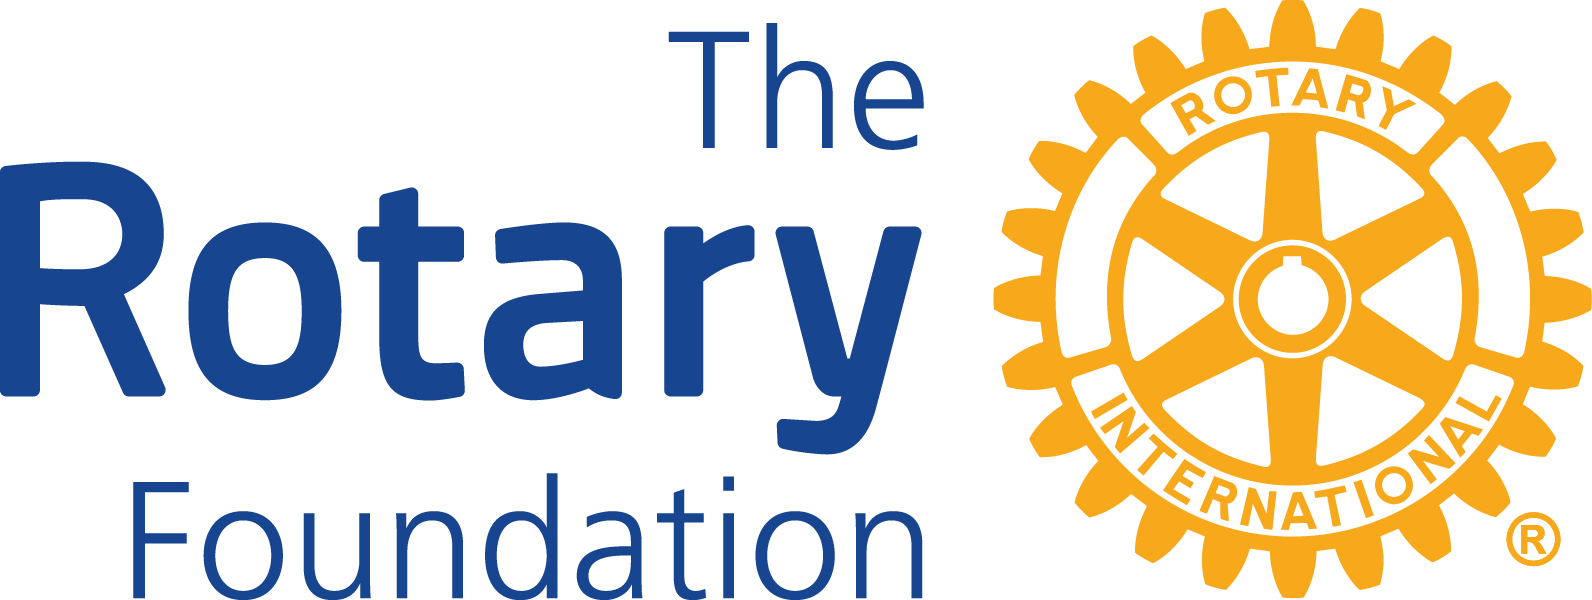 The-Rotary-Foundation.png